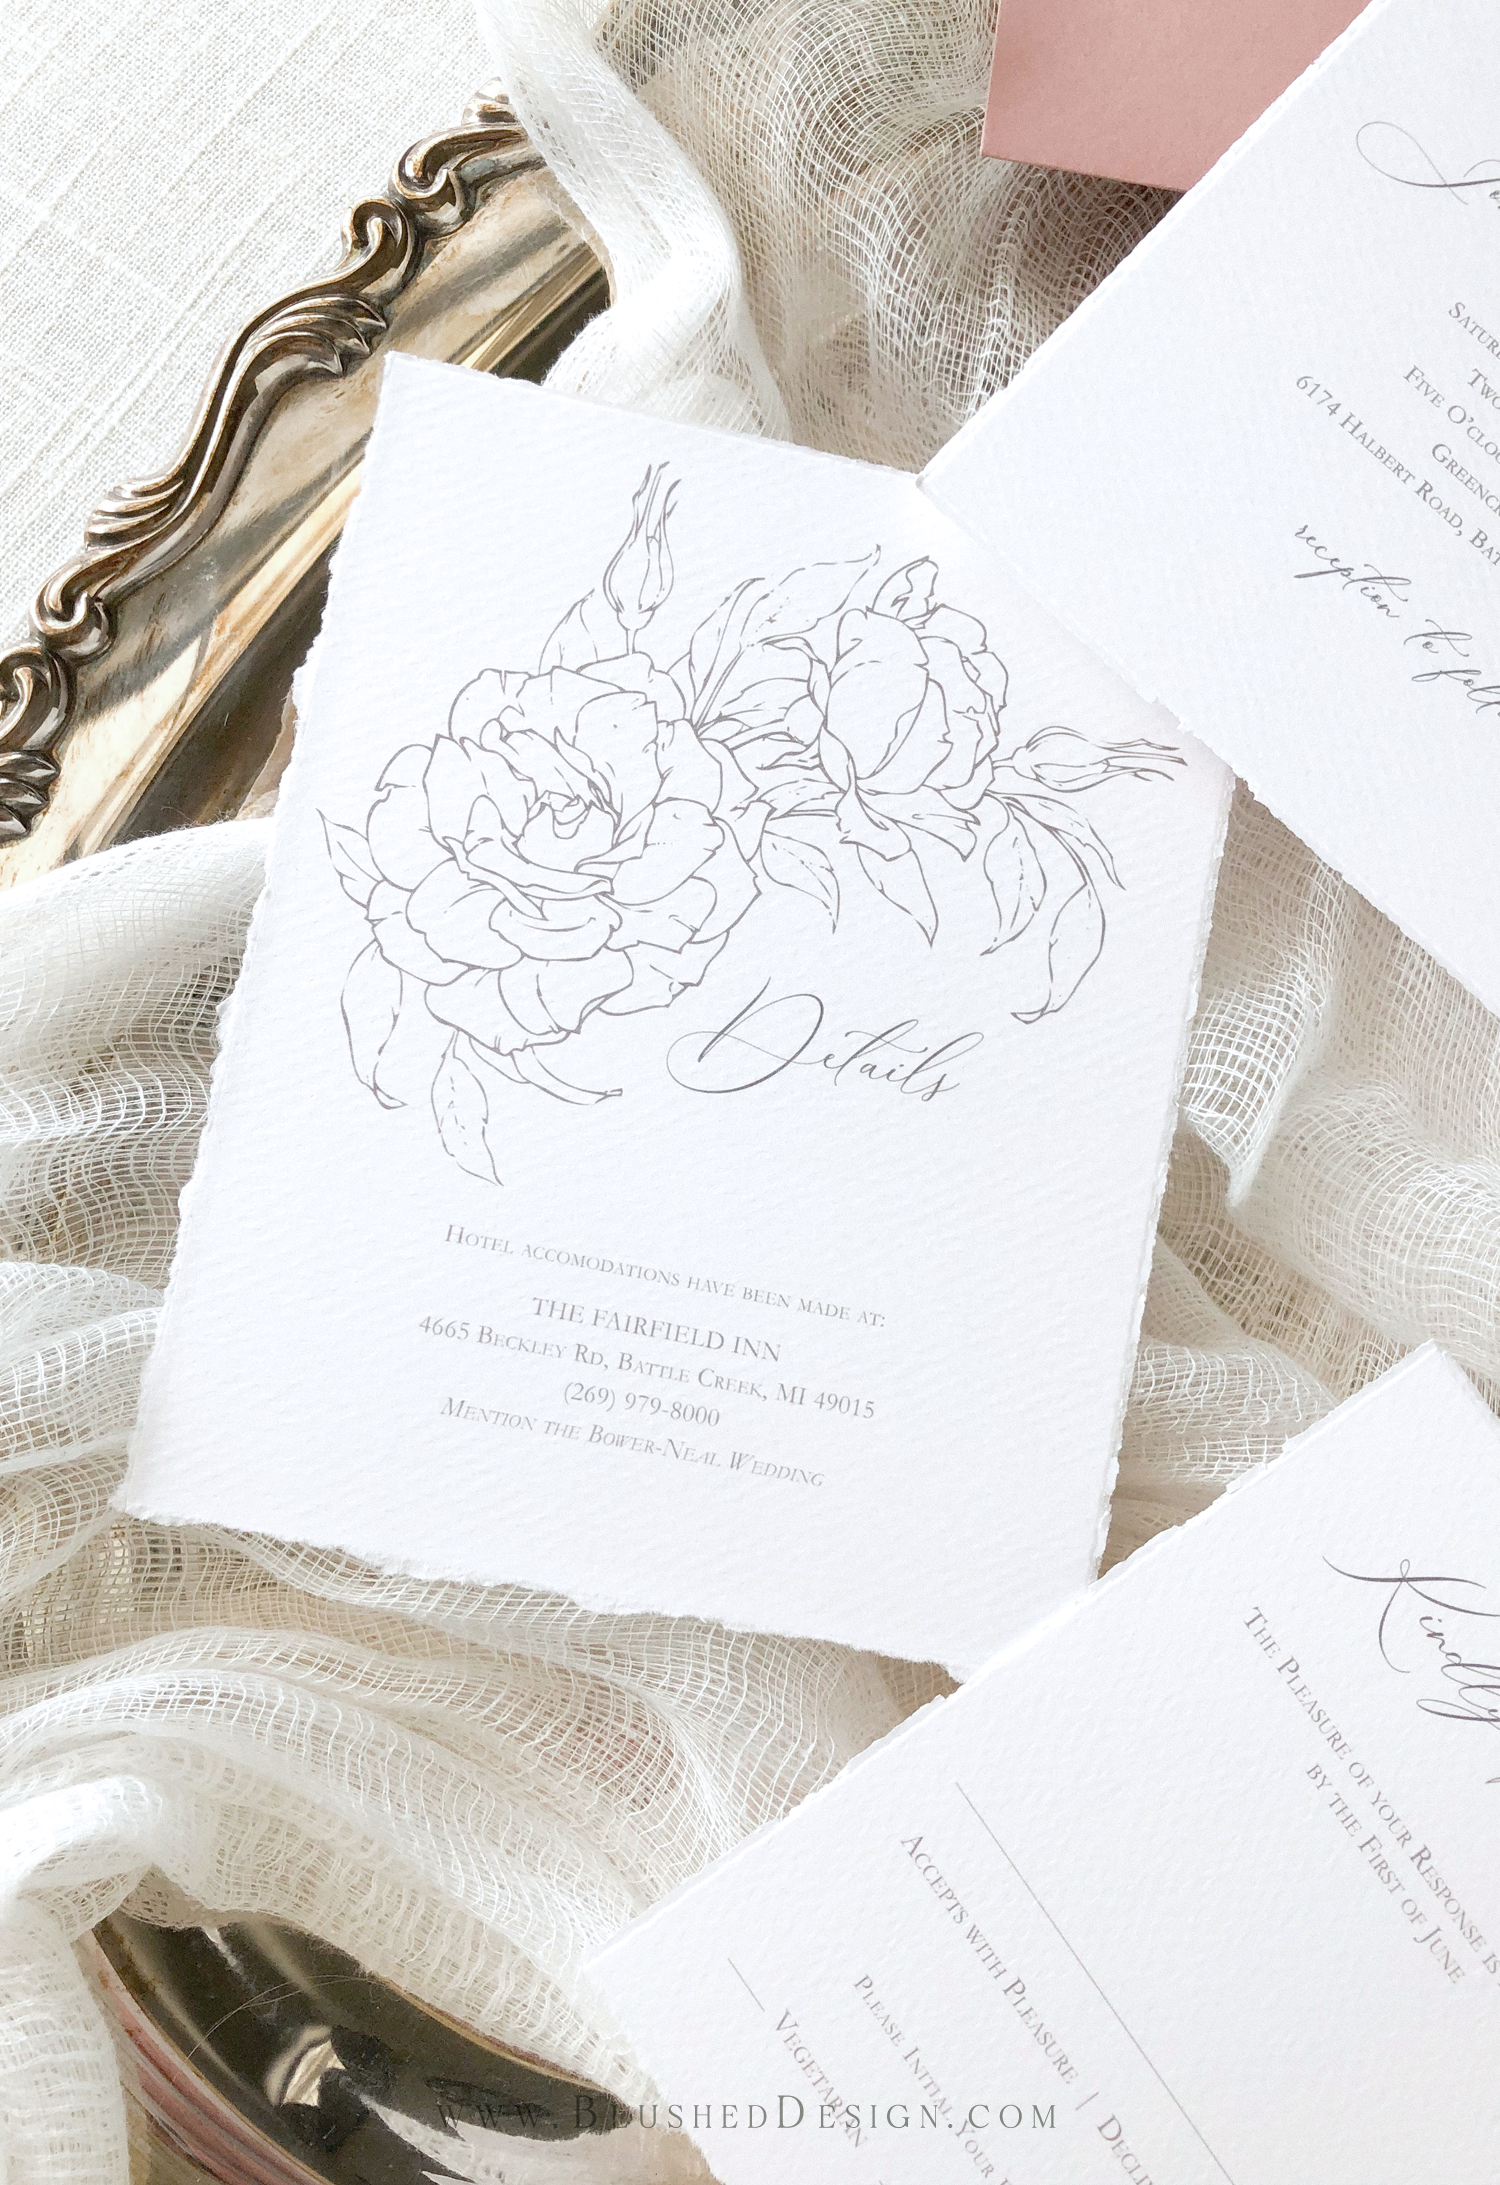 Romantic wedding invitations for the fine art bride.  These wedding invitations are the perfect mix of romantic feminity and clean sophistication.  The star of the show is definitely the floral illustrations, but the beautiful modern calligraphy and handmade paper come in a close second! #fineartwedding #romanticwedding #whimsicalwedding #weddinginvitations #elegantweddinginvitations